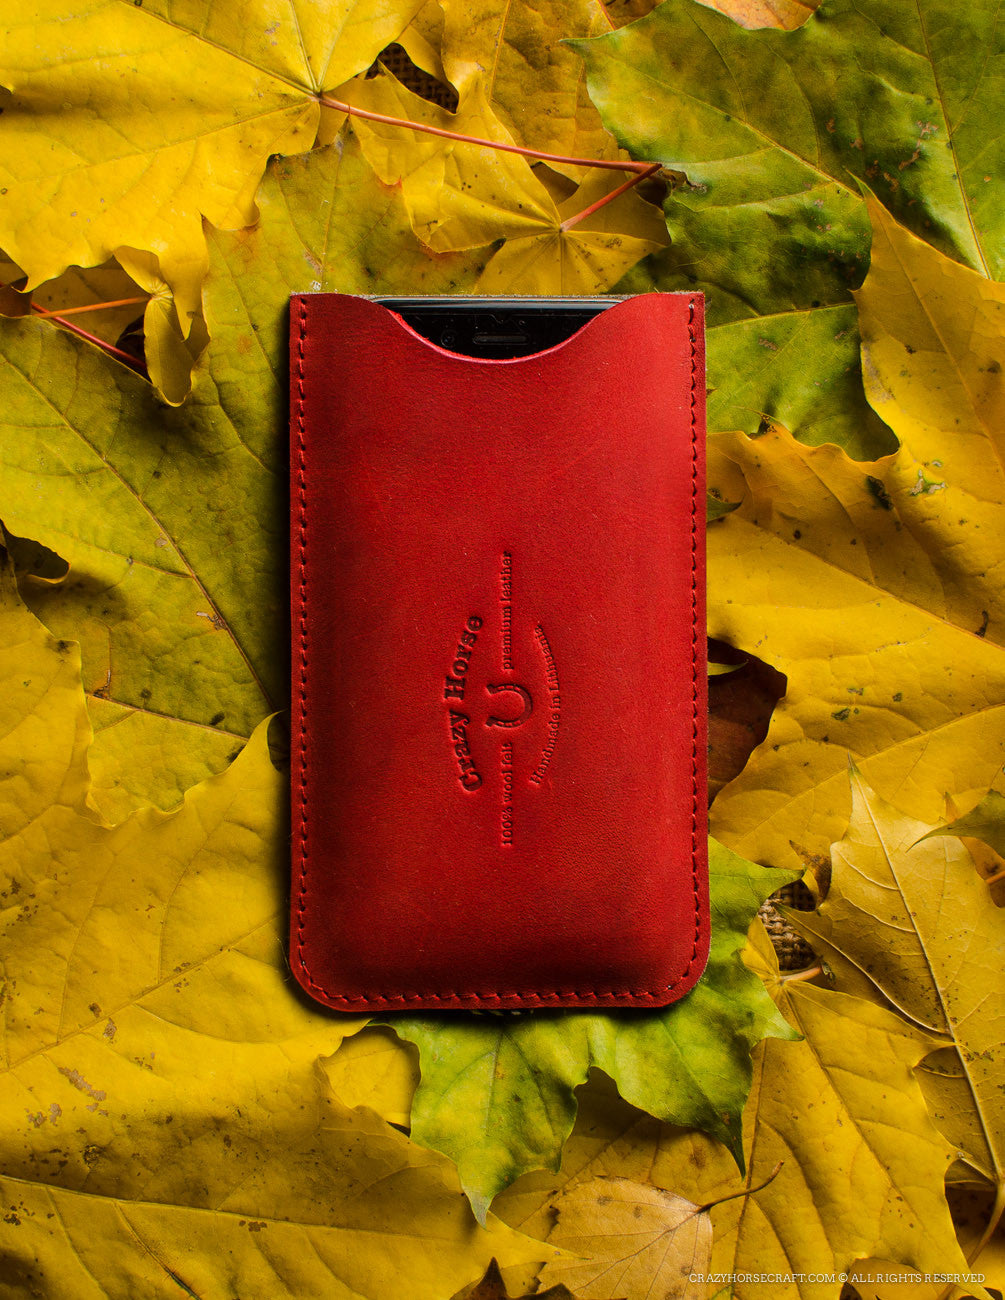 Leather Red Iphone 6s case wool felt with cardholder